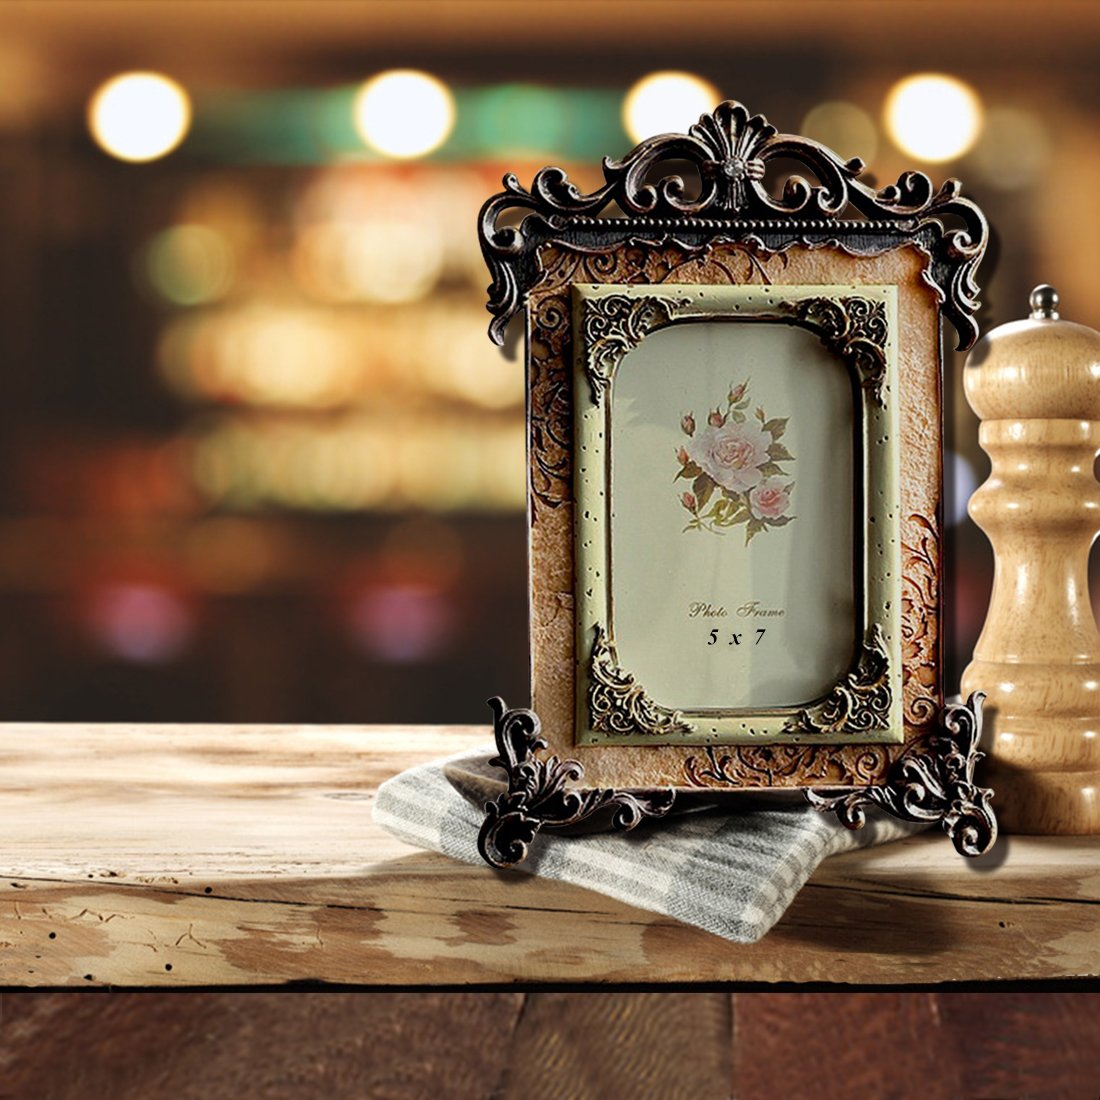 Amazon gift garden 5 by 7 vintage picture frames friends amazon gift garden 5 by 7 vintage picture frames friends gifts for photo 5x7 inch jeuxipadfo Images